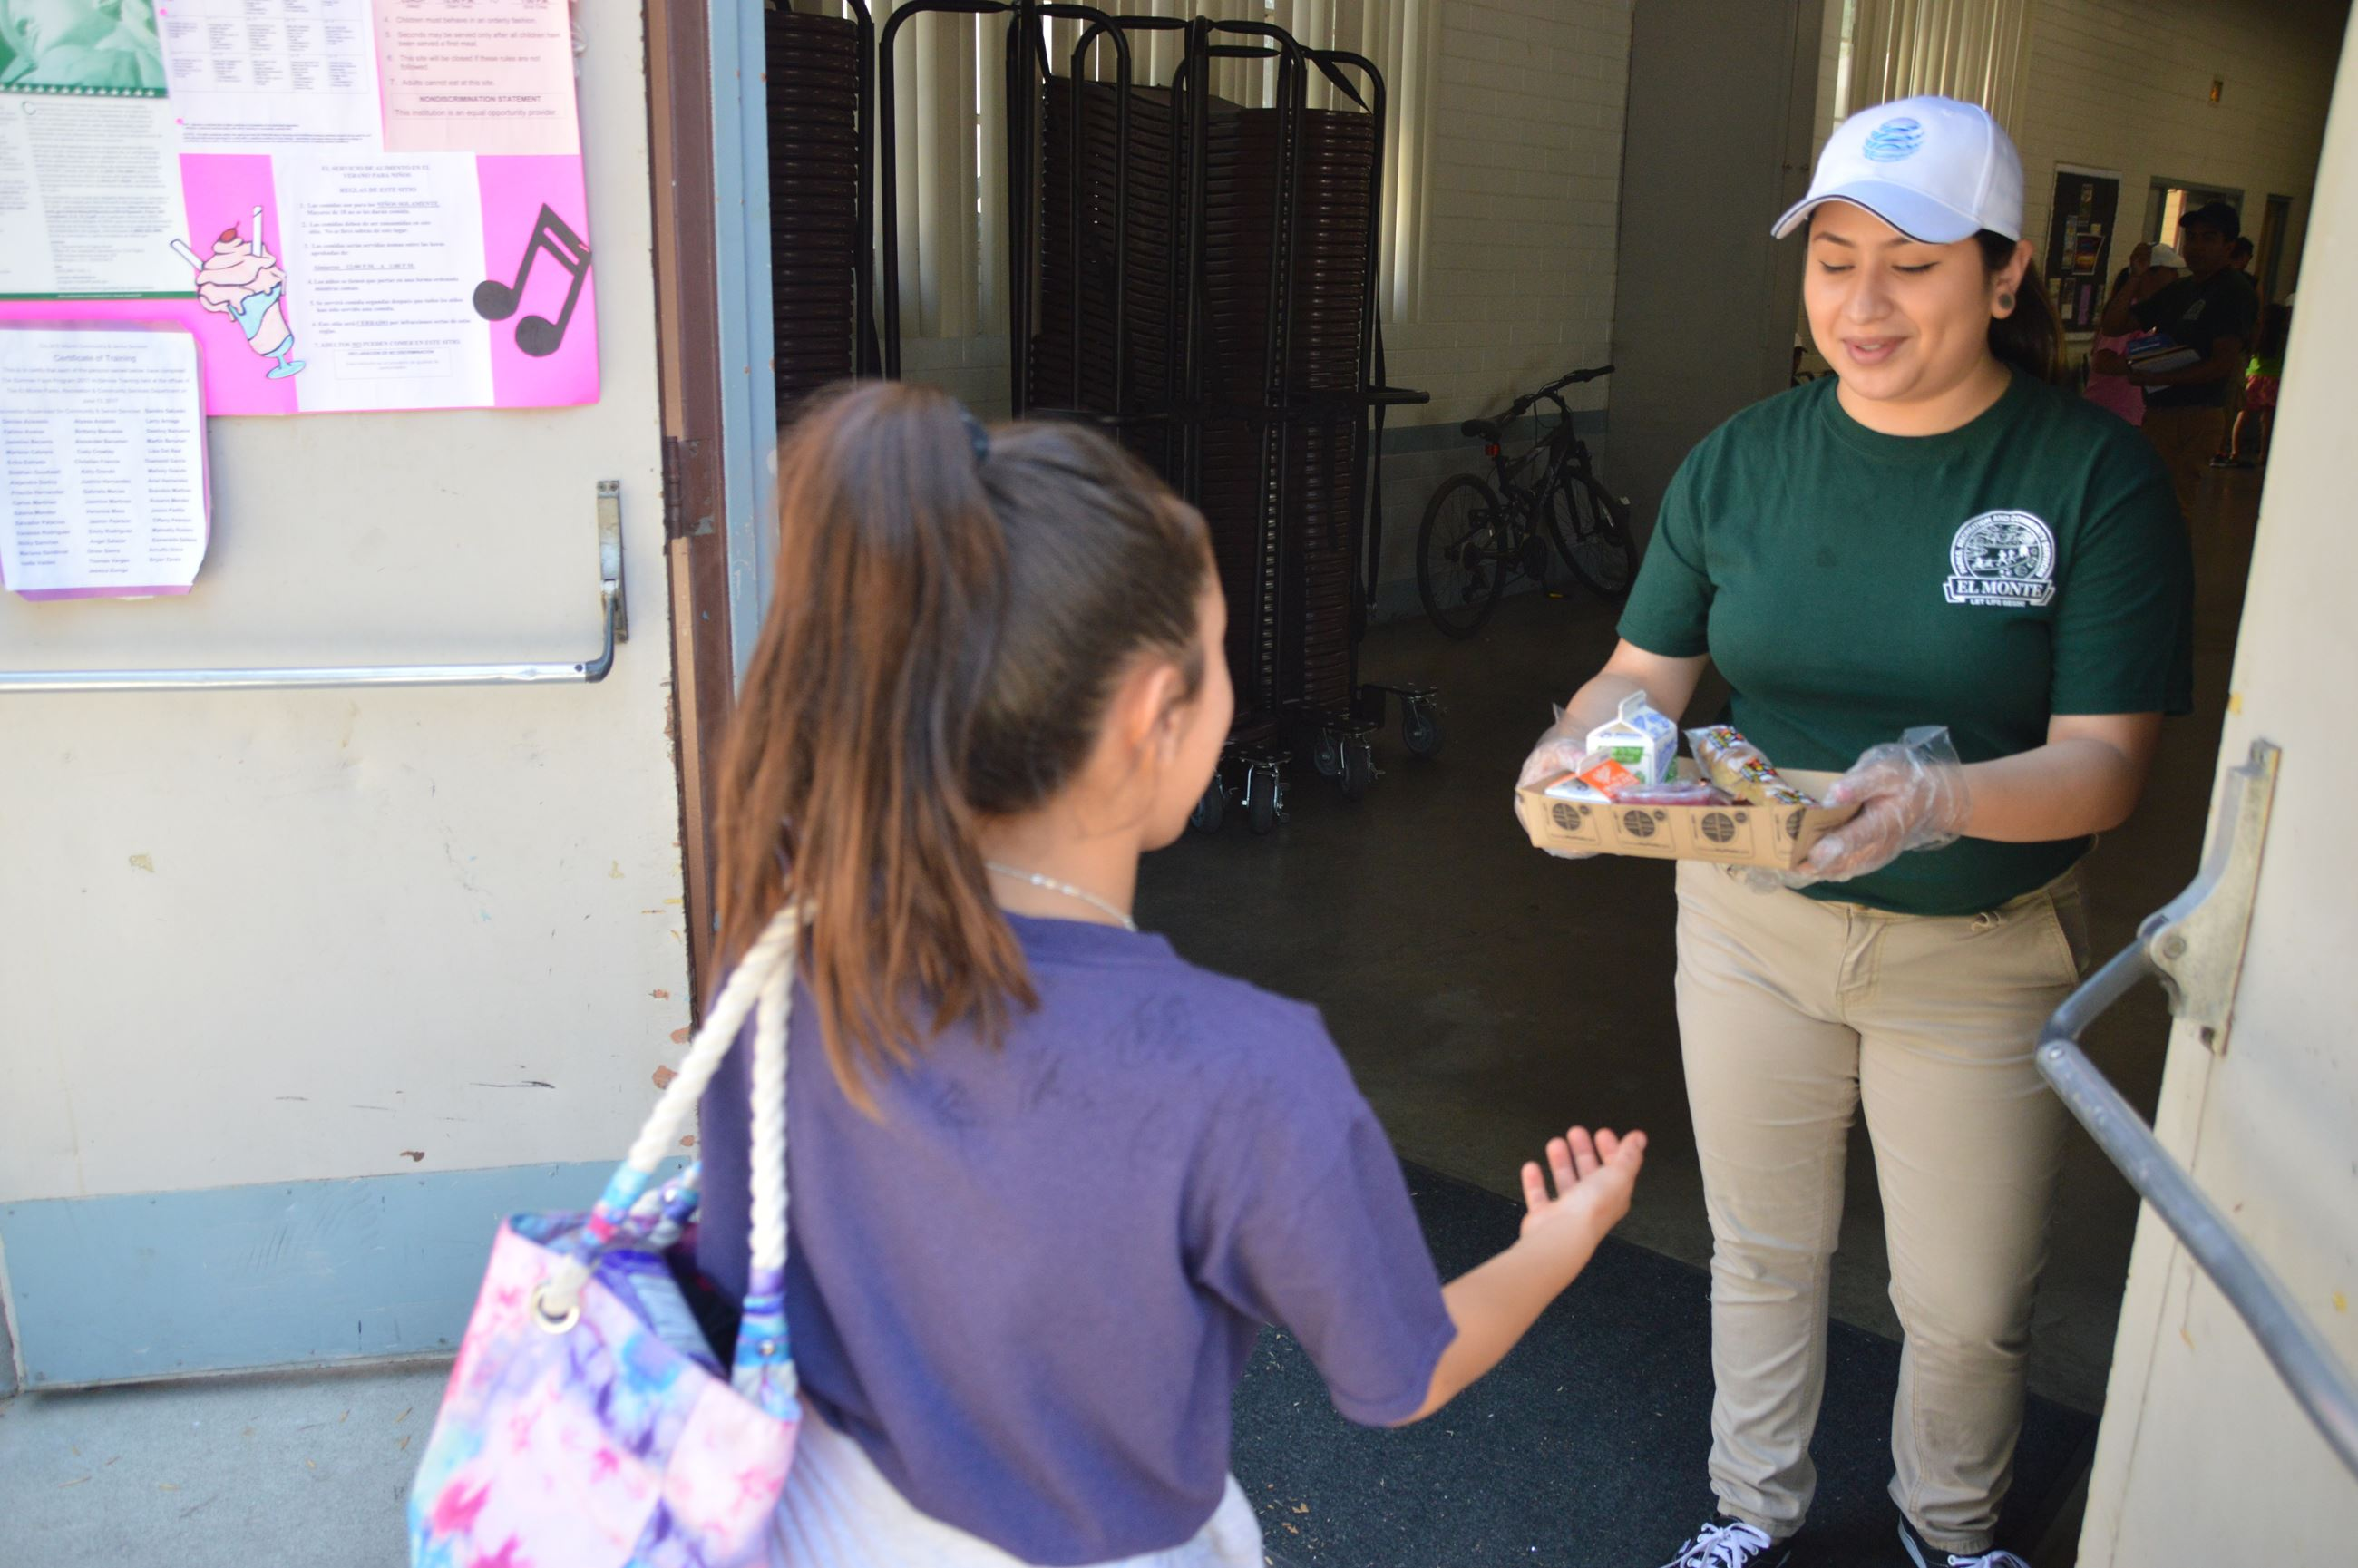 Park leader handing out a meal to a child during the Summer Food Program